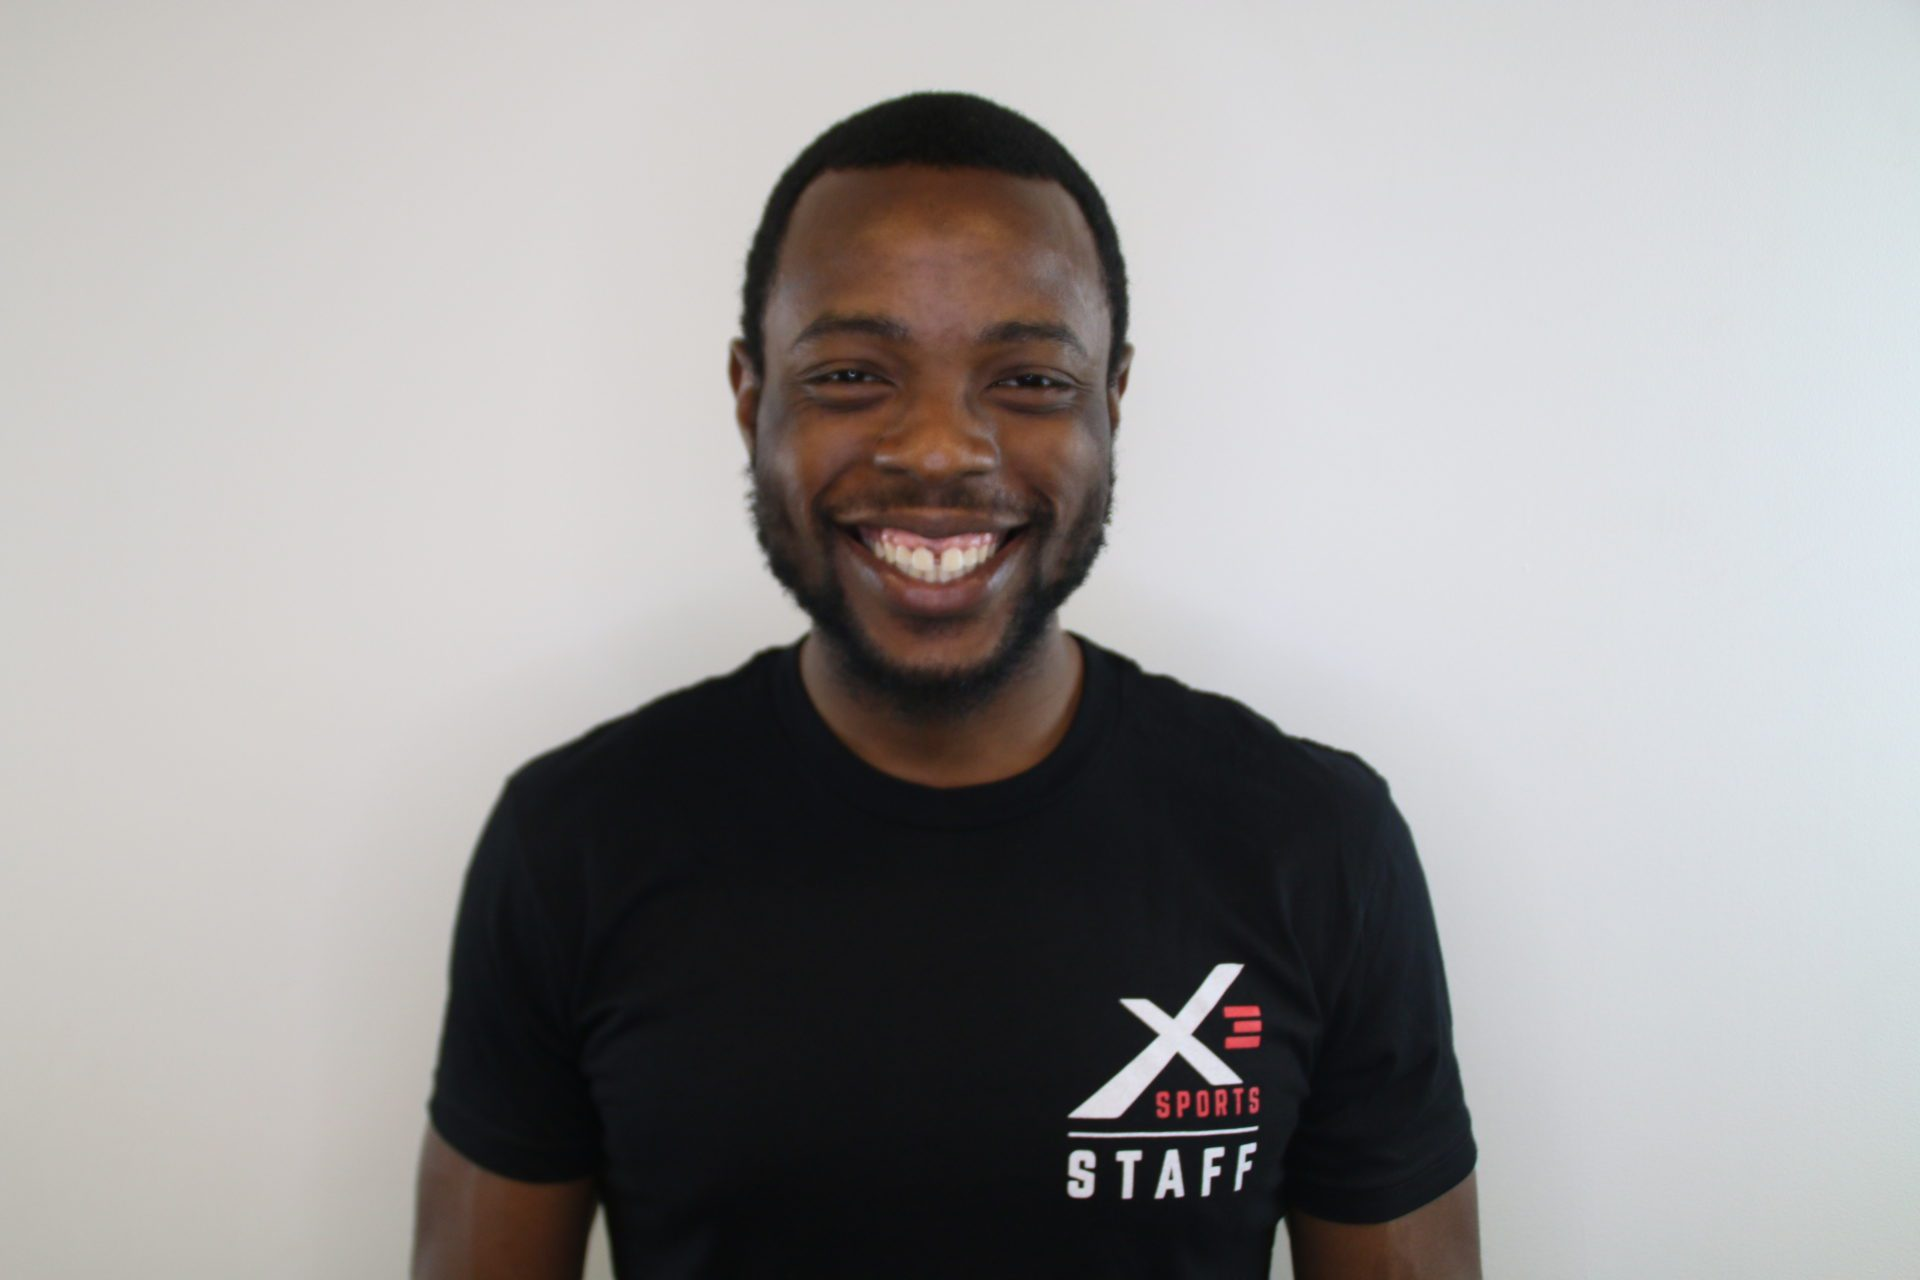 Terrance Weathersby | X3 Sports Employee | X3 Sports